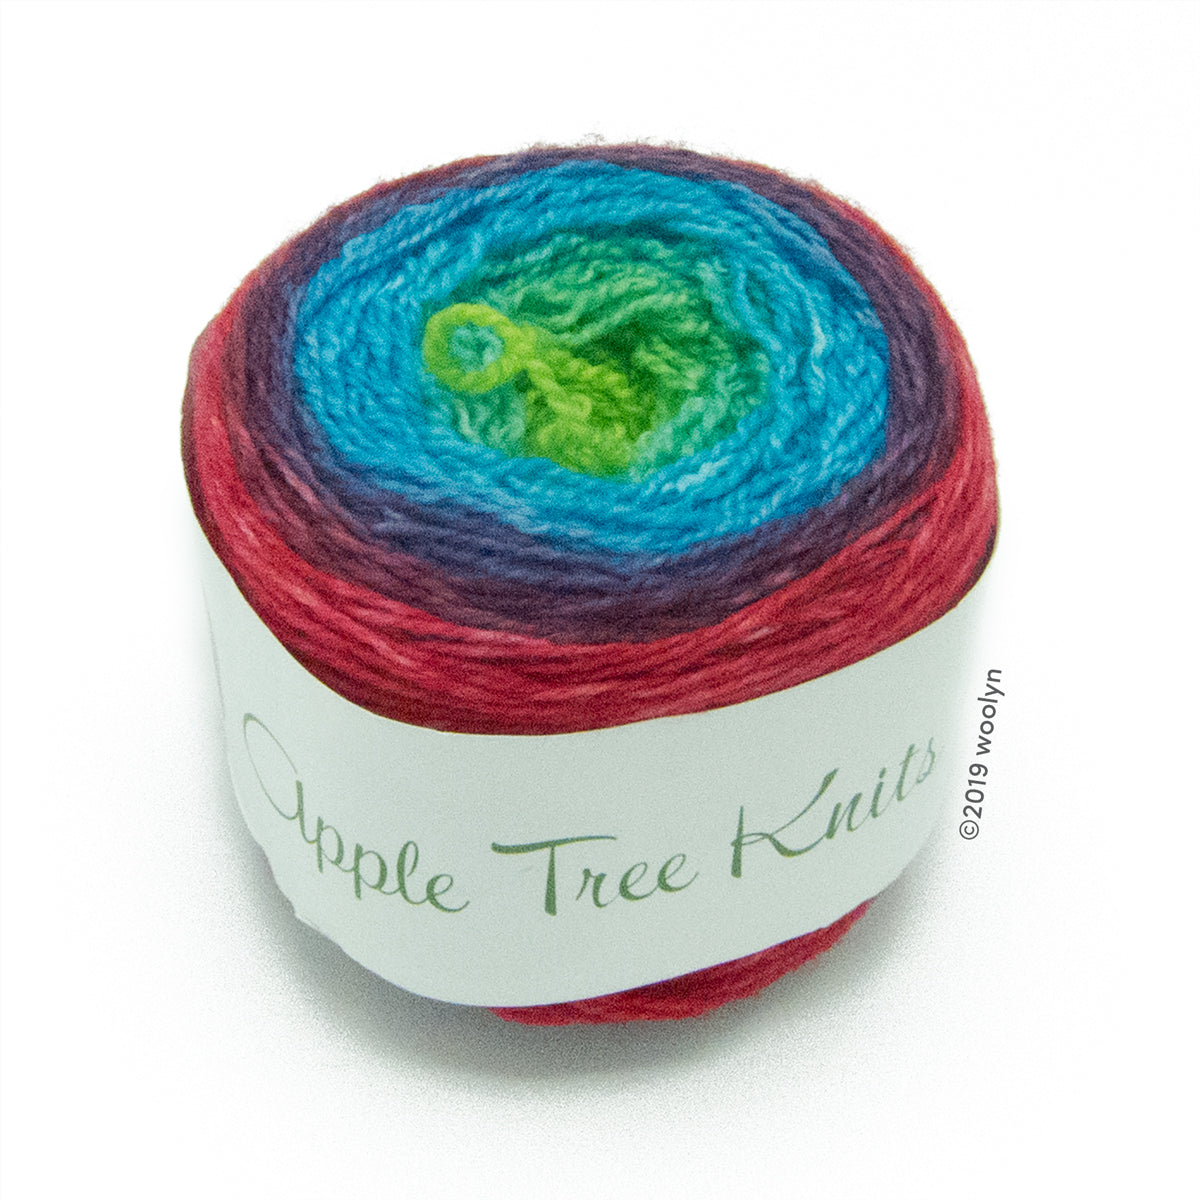 A wound cake of hand dyed fingering weight yarn from Apple Tree Knits.  Yarn is a gradient from red to purple to turquoise to bright green.